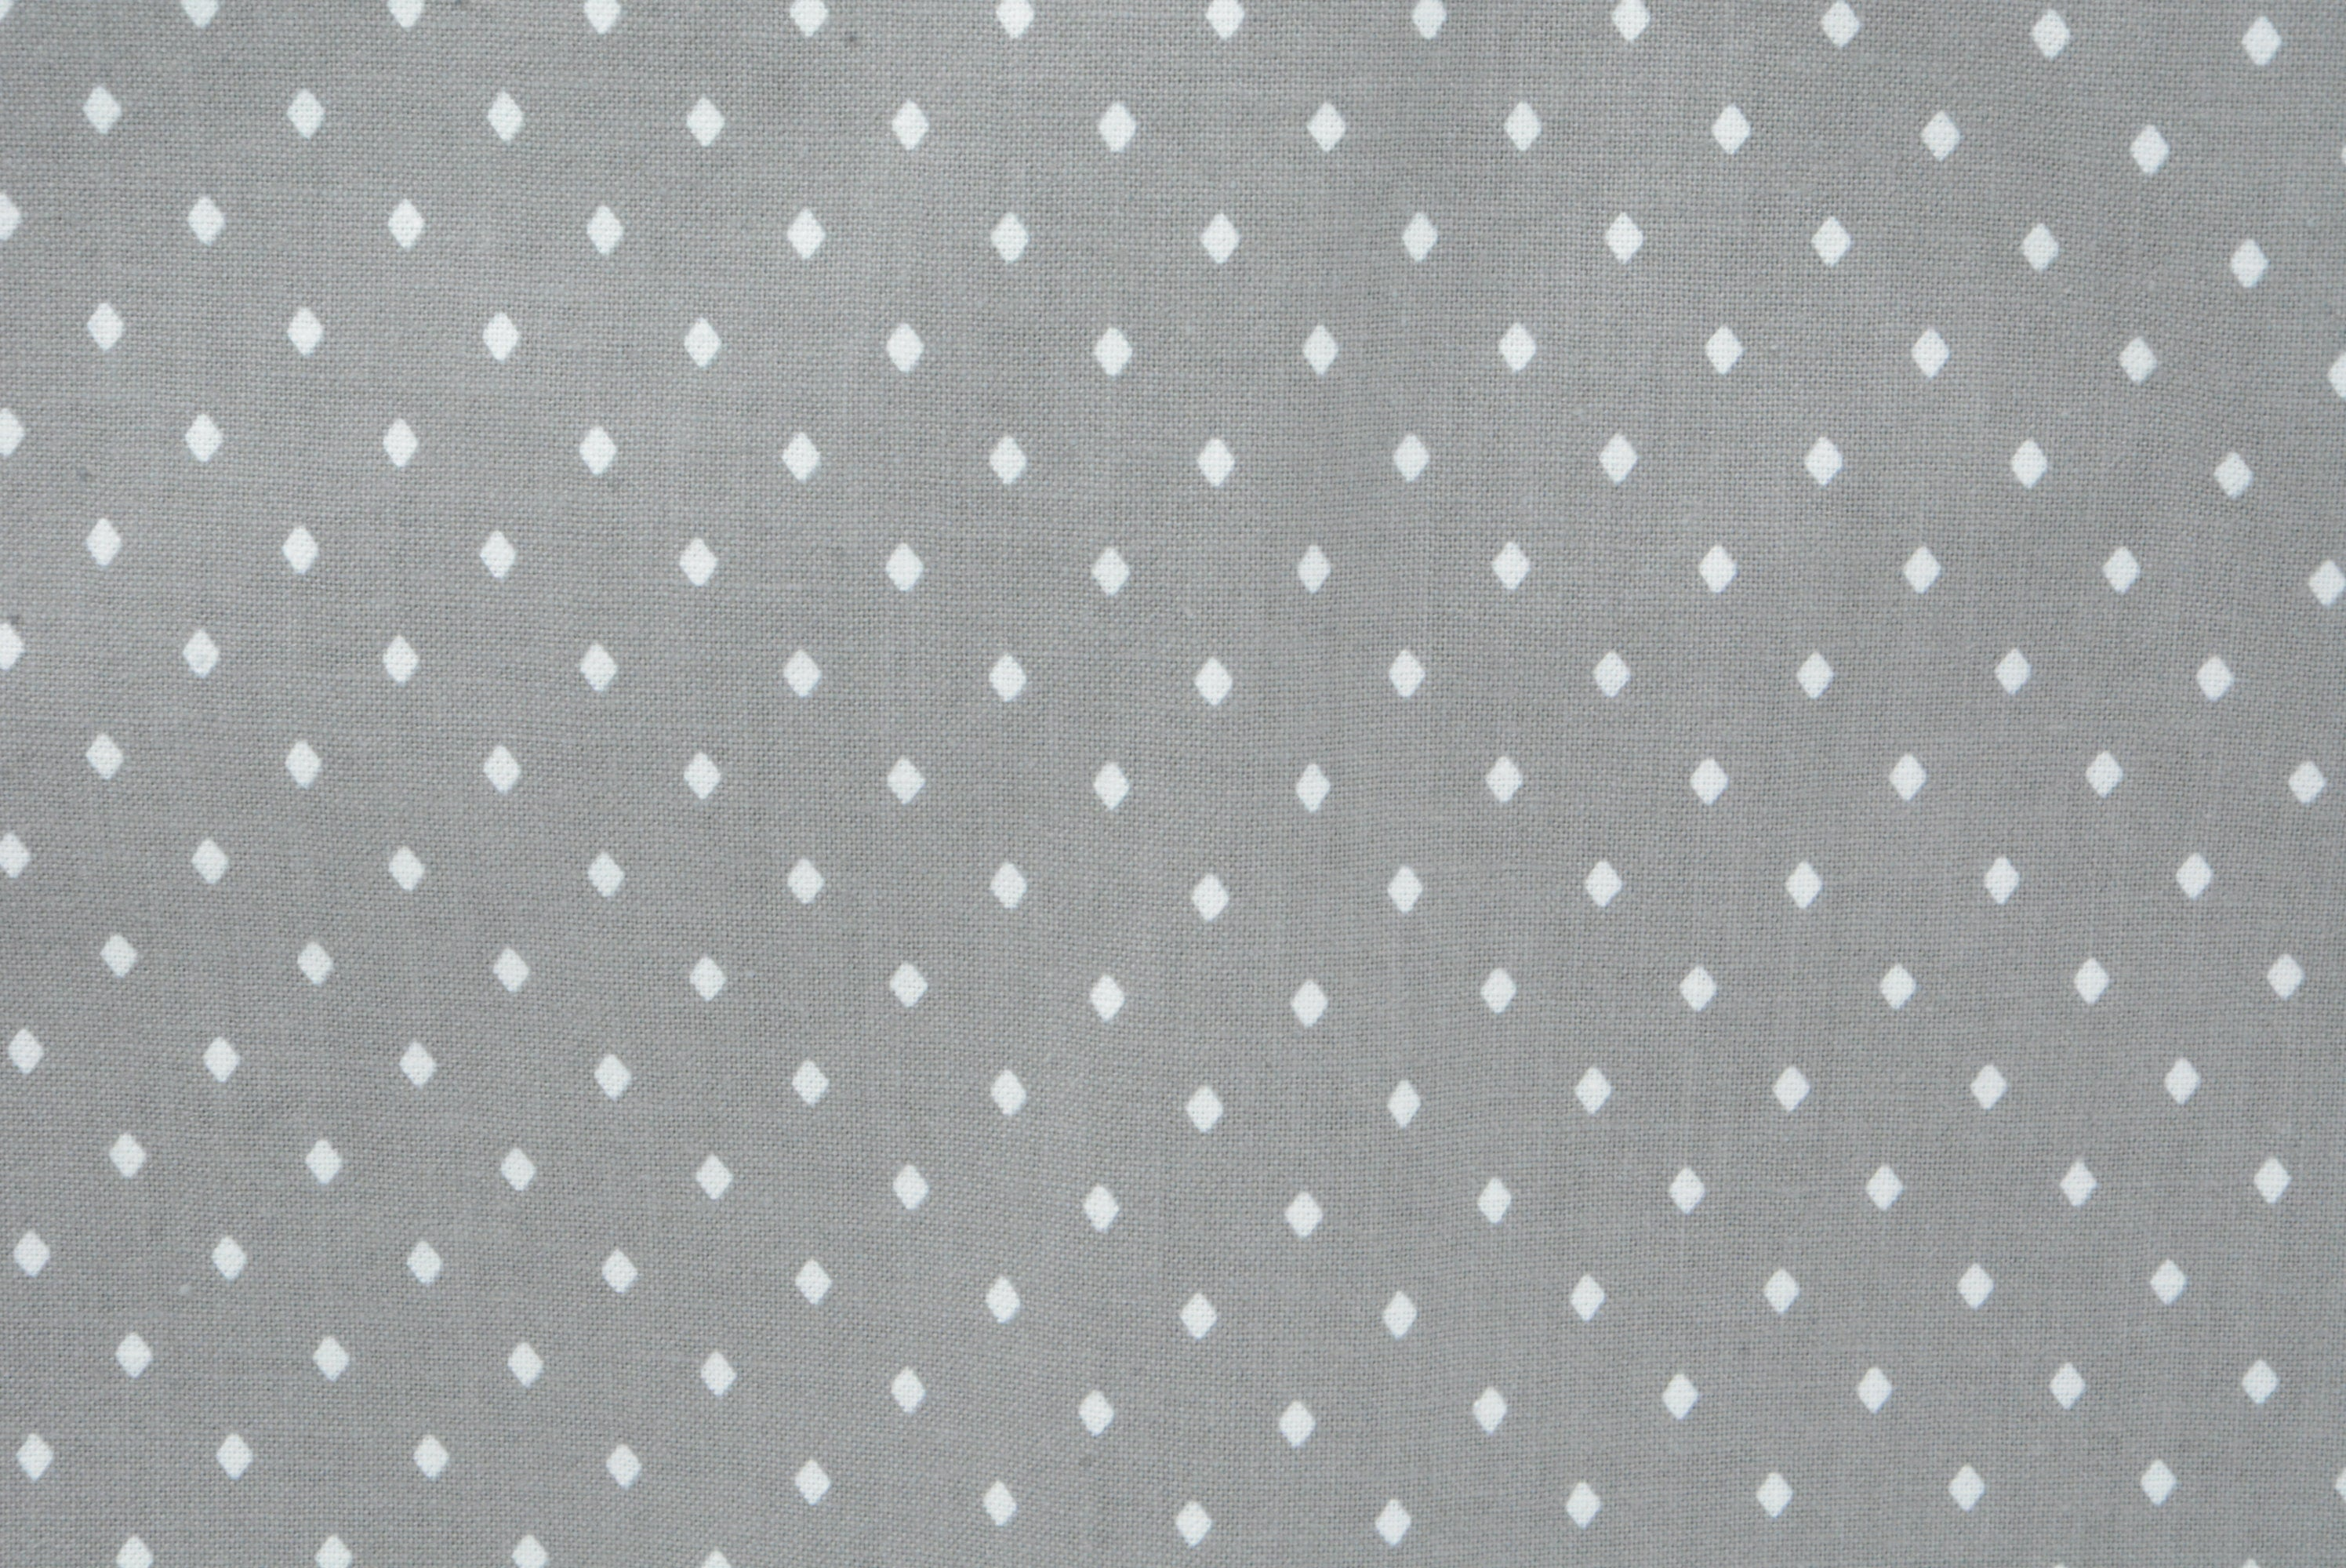 Diamond Polka Dots on Gray